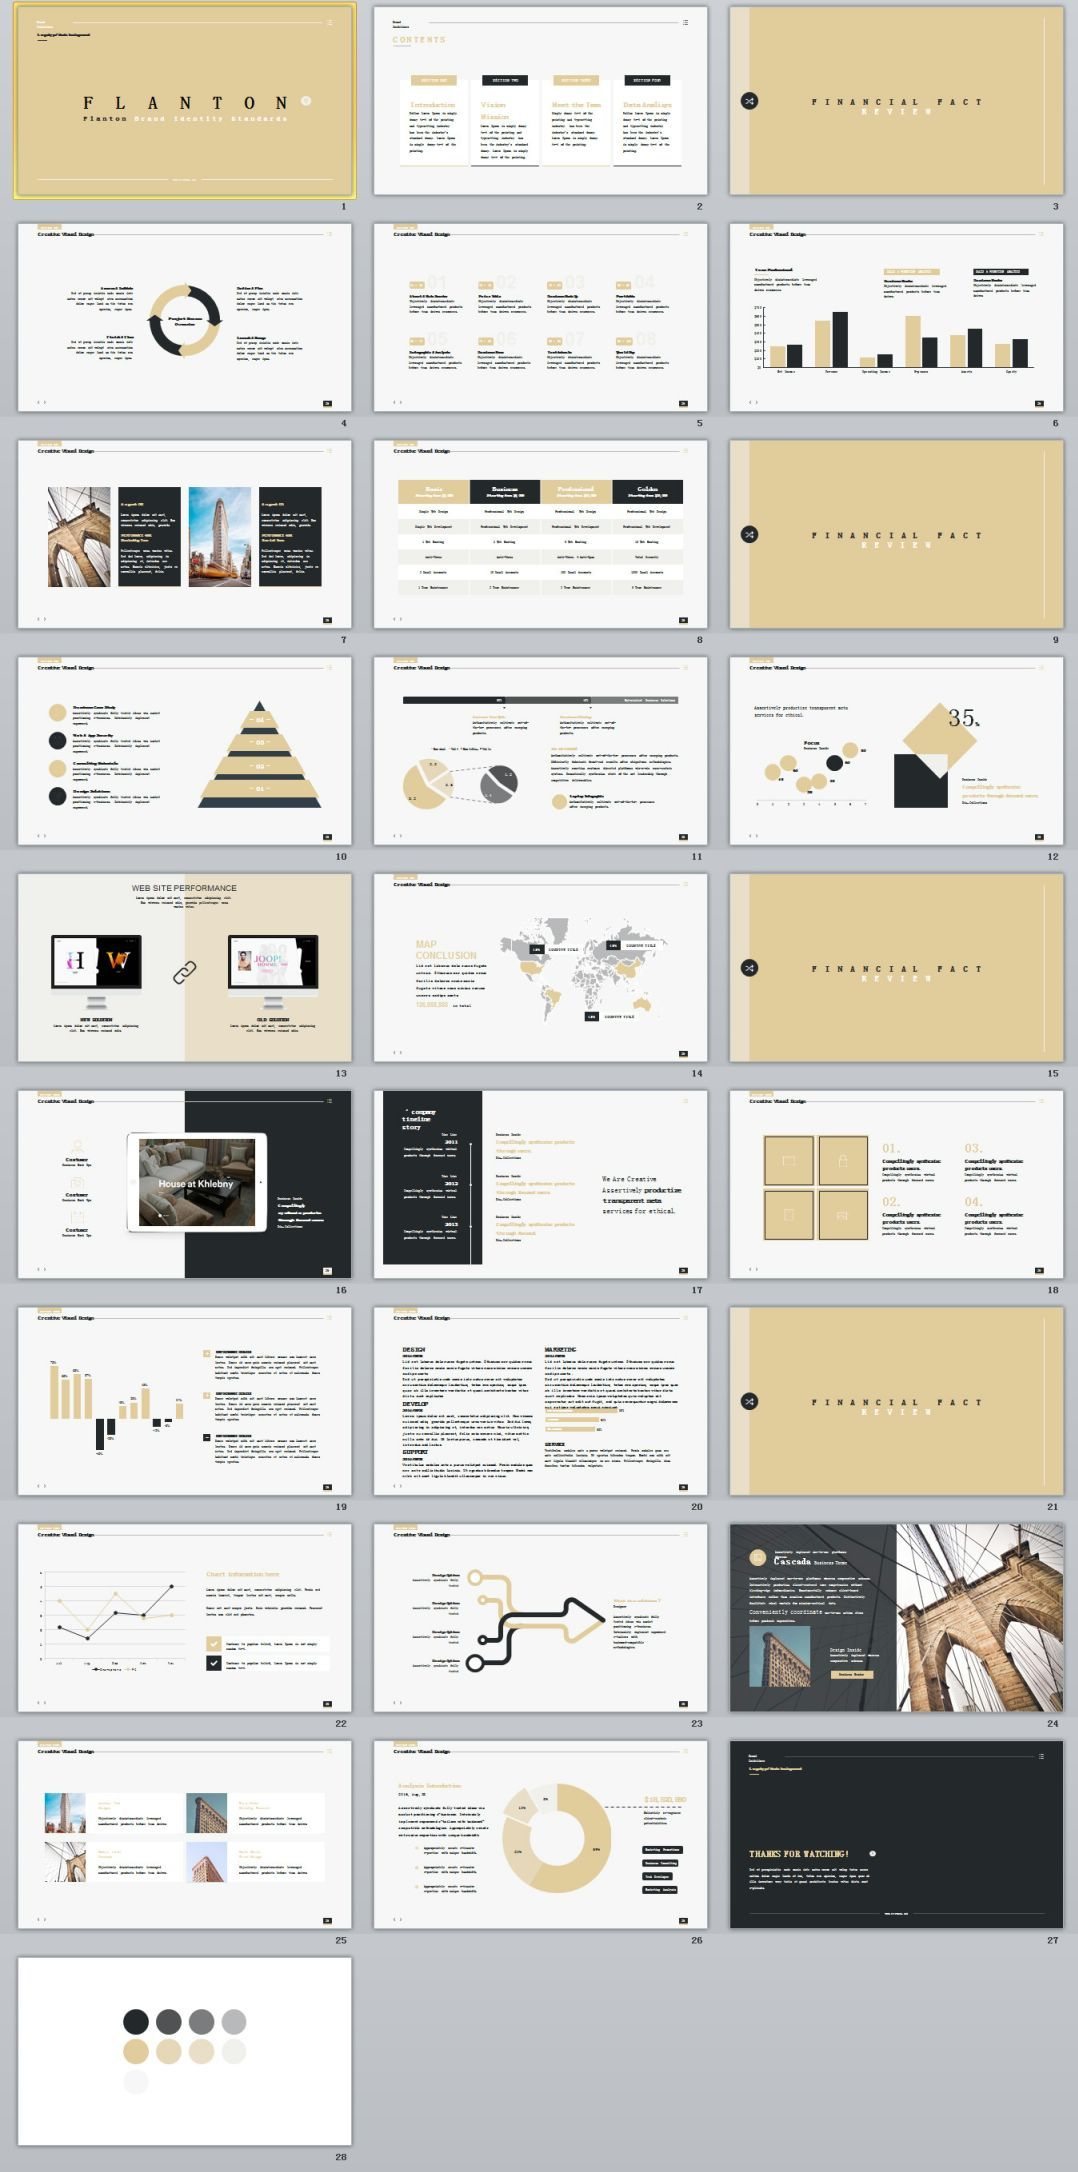 28 Beige Fashion Annual Work Powerpoint Template Powerpoint Templates Business Infographic Marketing Presentation